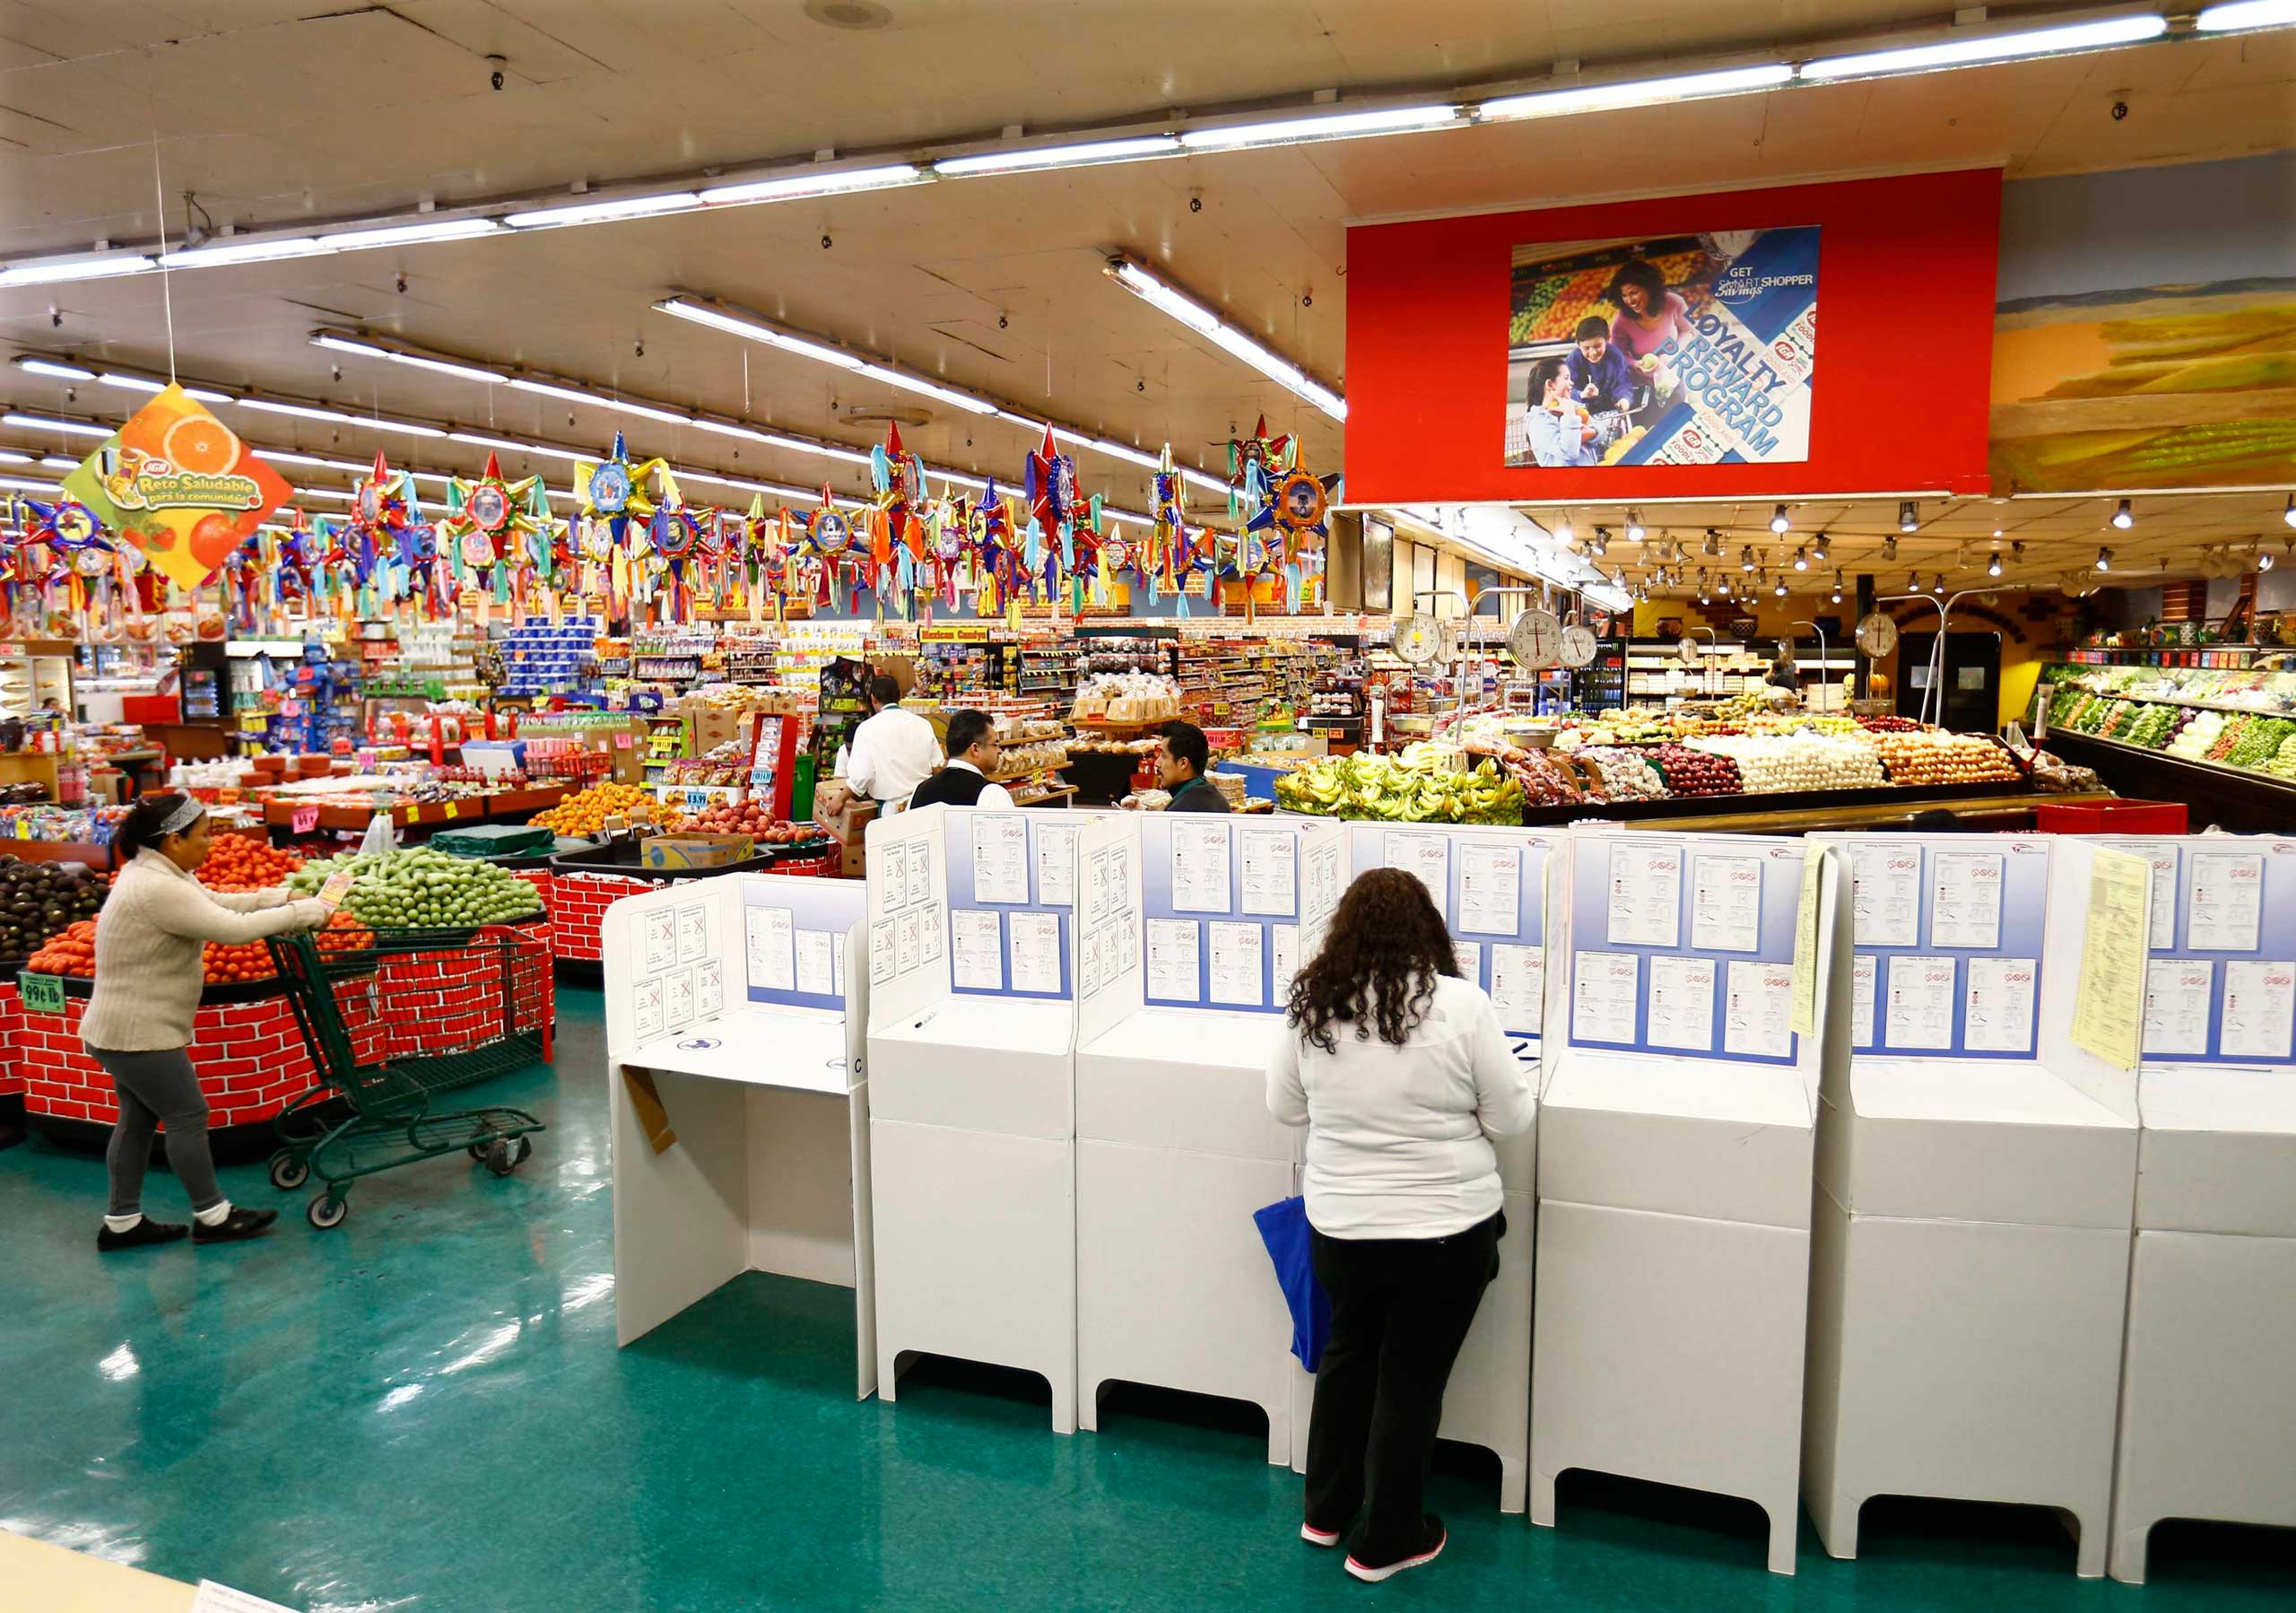 A woman votes at a polling station inside a local grocery store in National City, Calif. on Nov. 4, 2014.